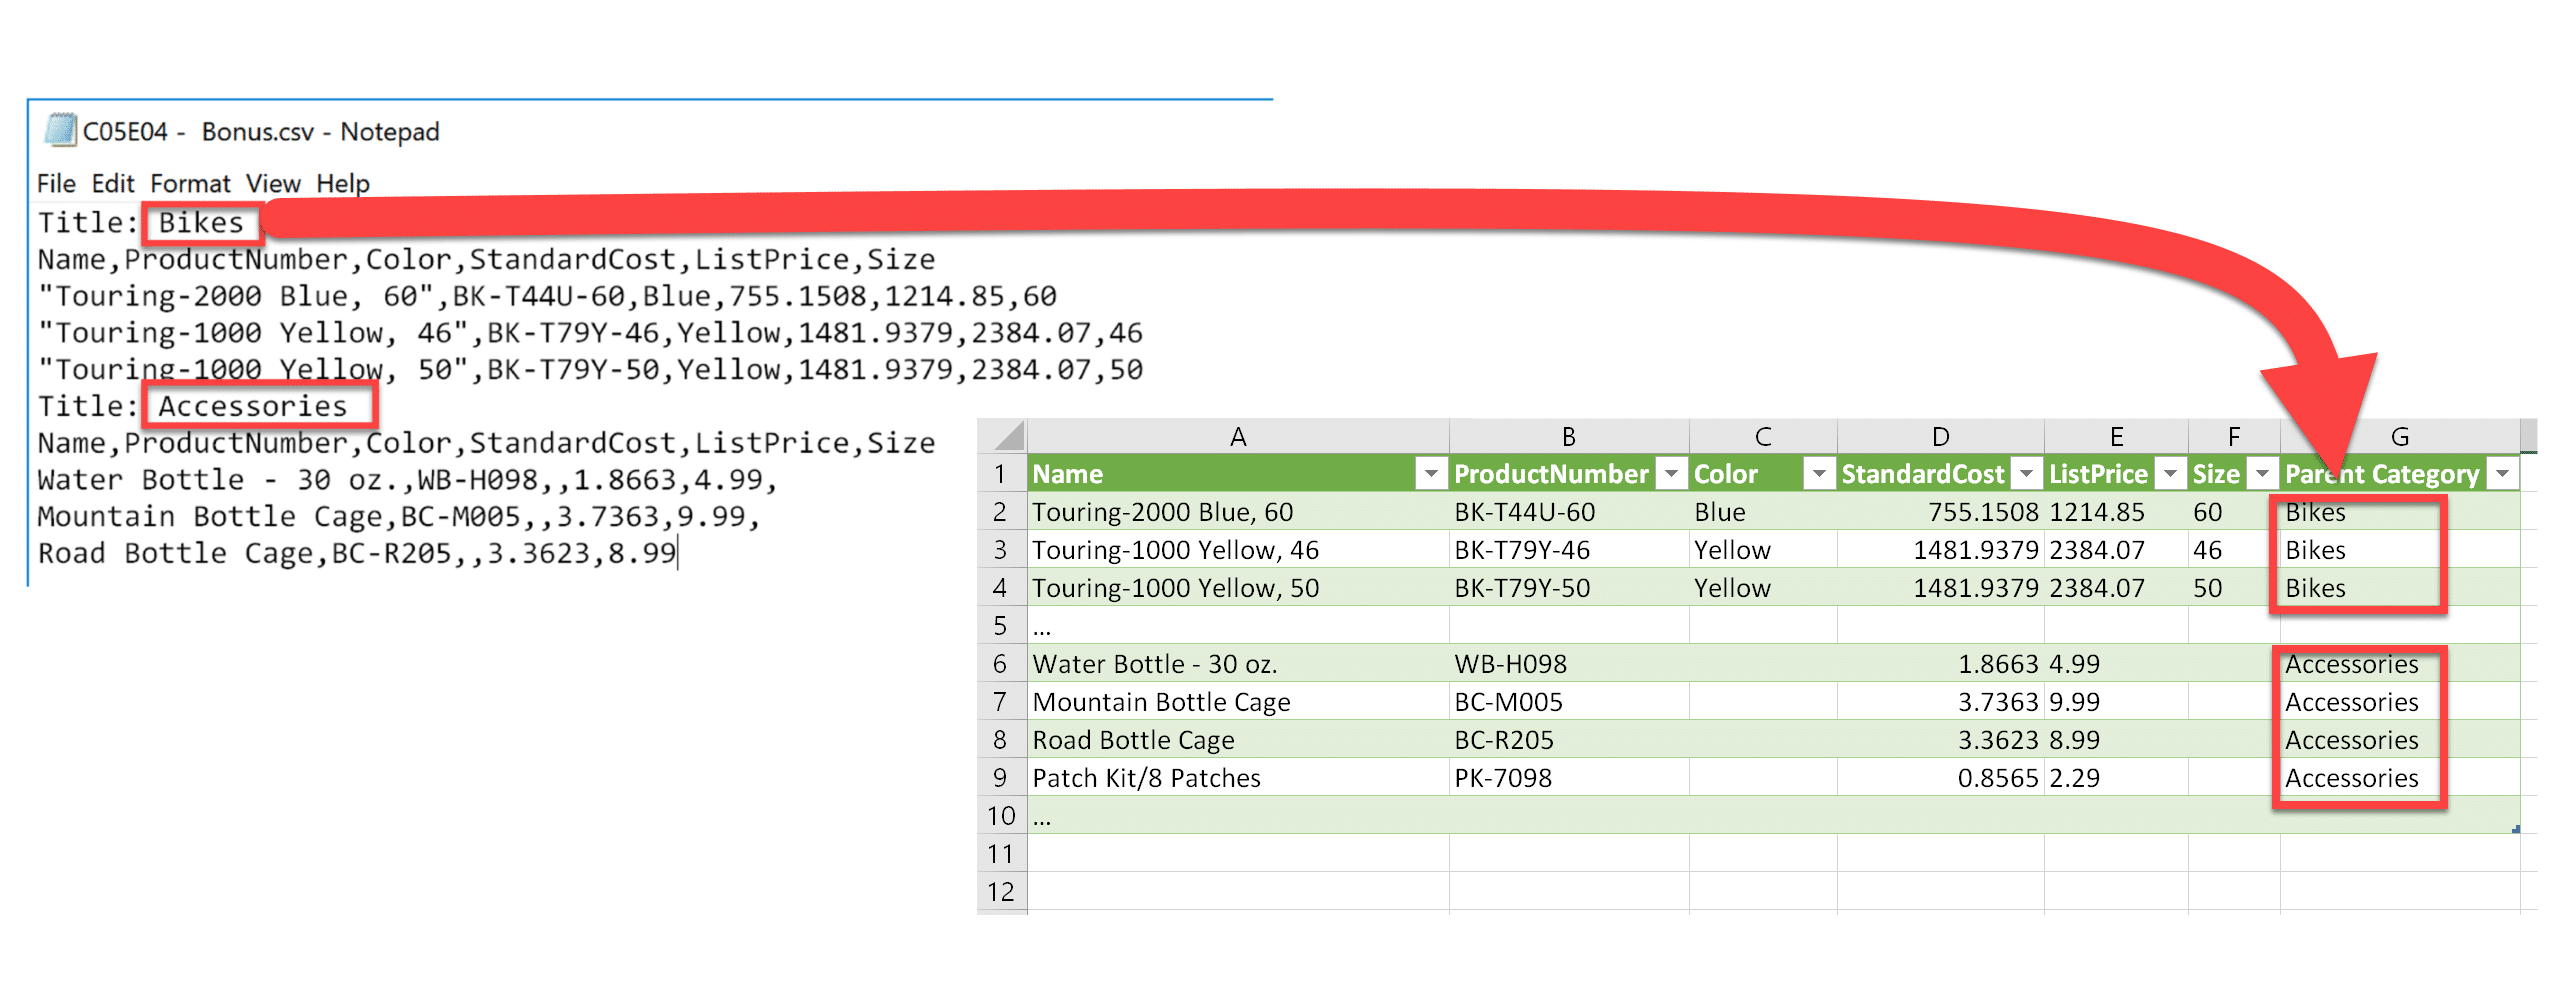 Preserving Context From Csv